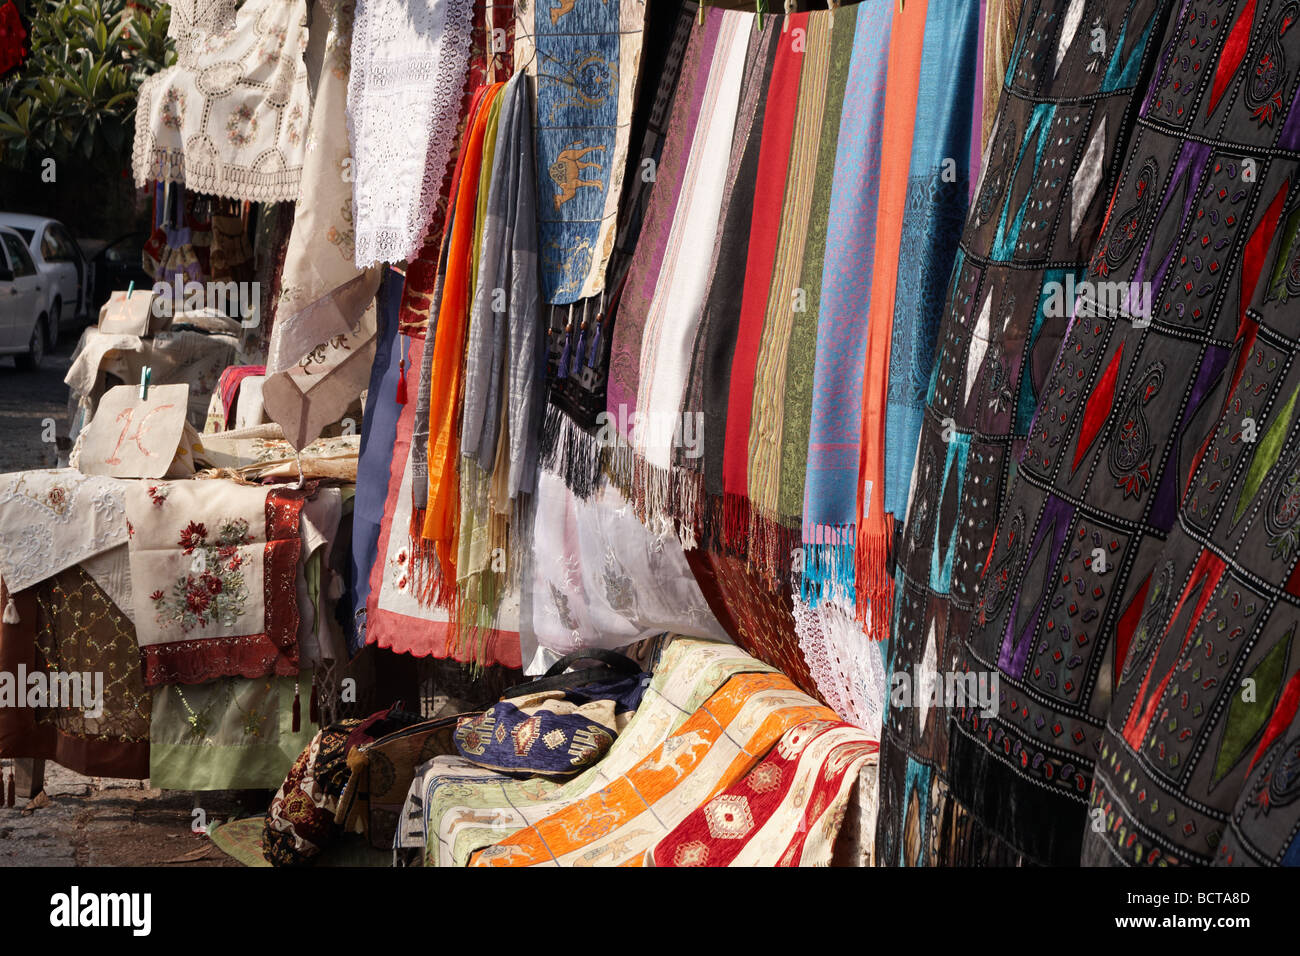 Richly coloured traditional fabric for sale at the market in a bazaar, Antalya Turkey - Stock Image